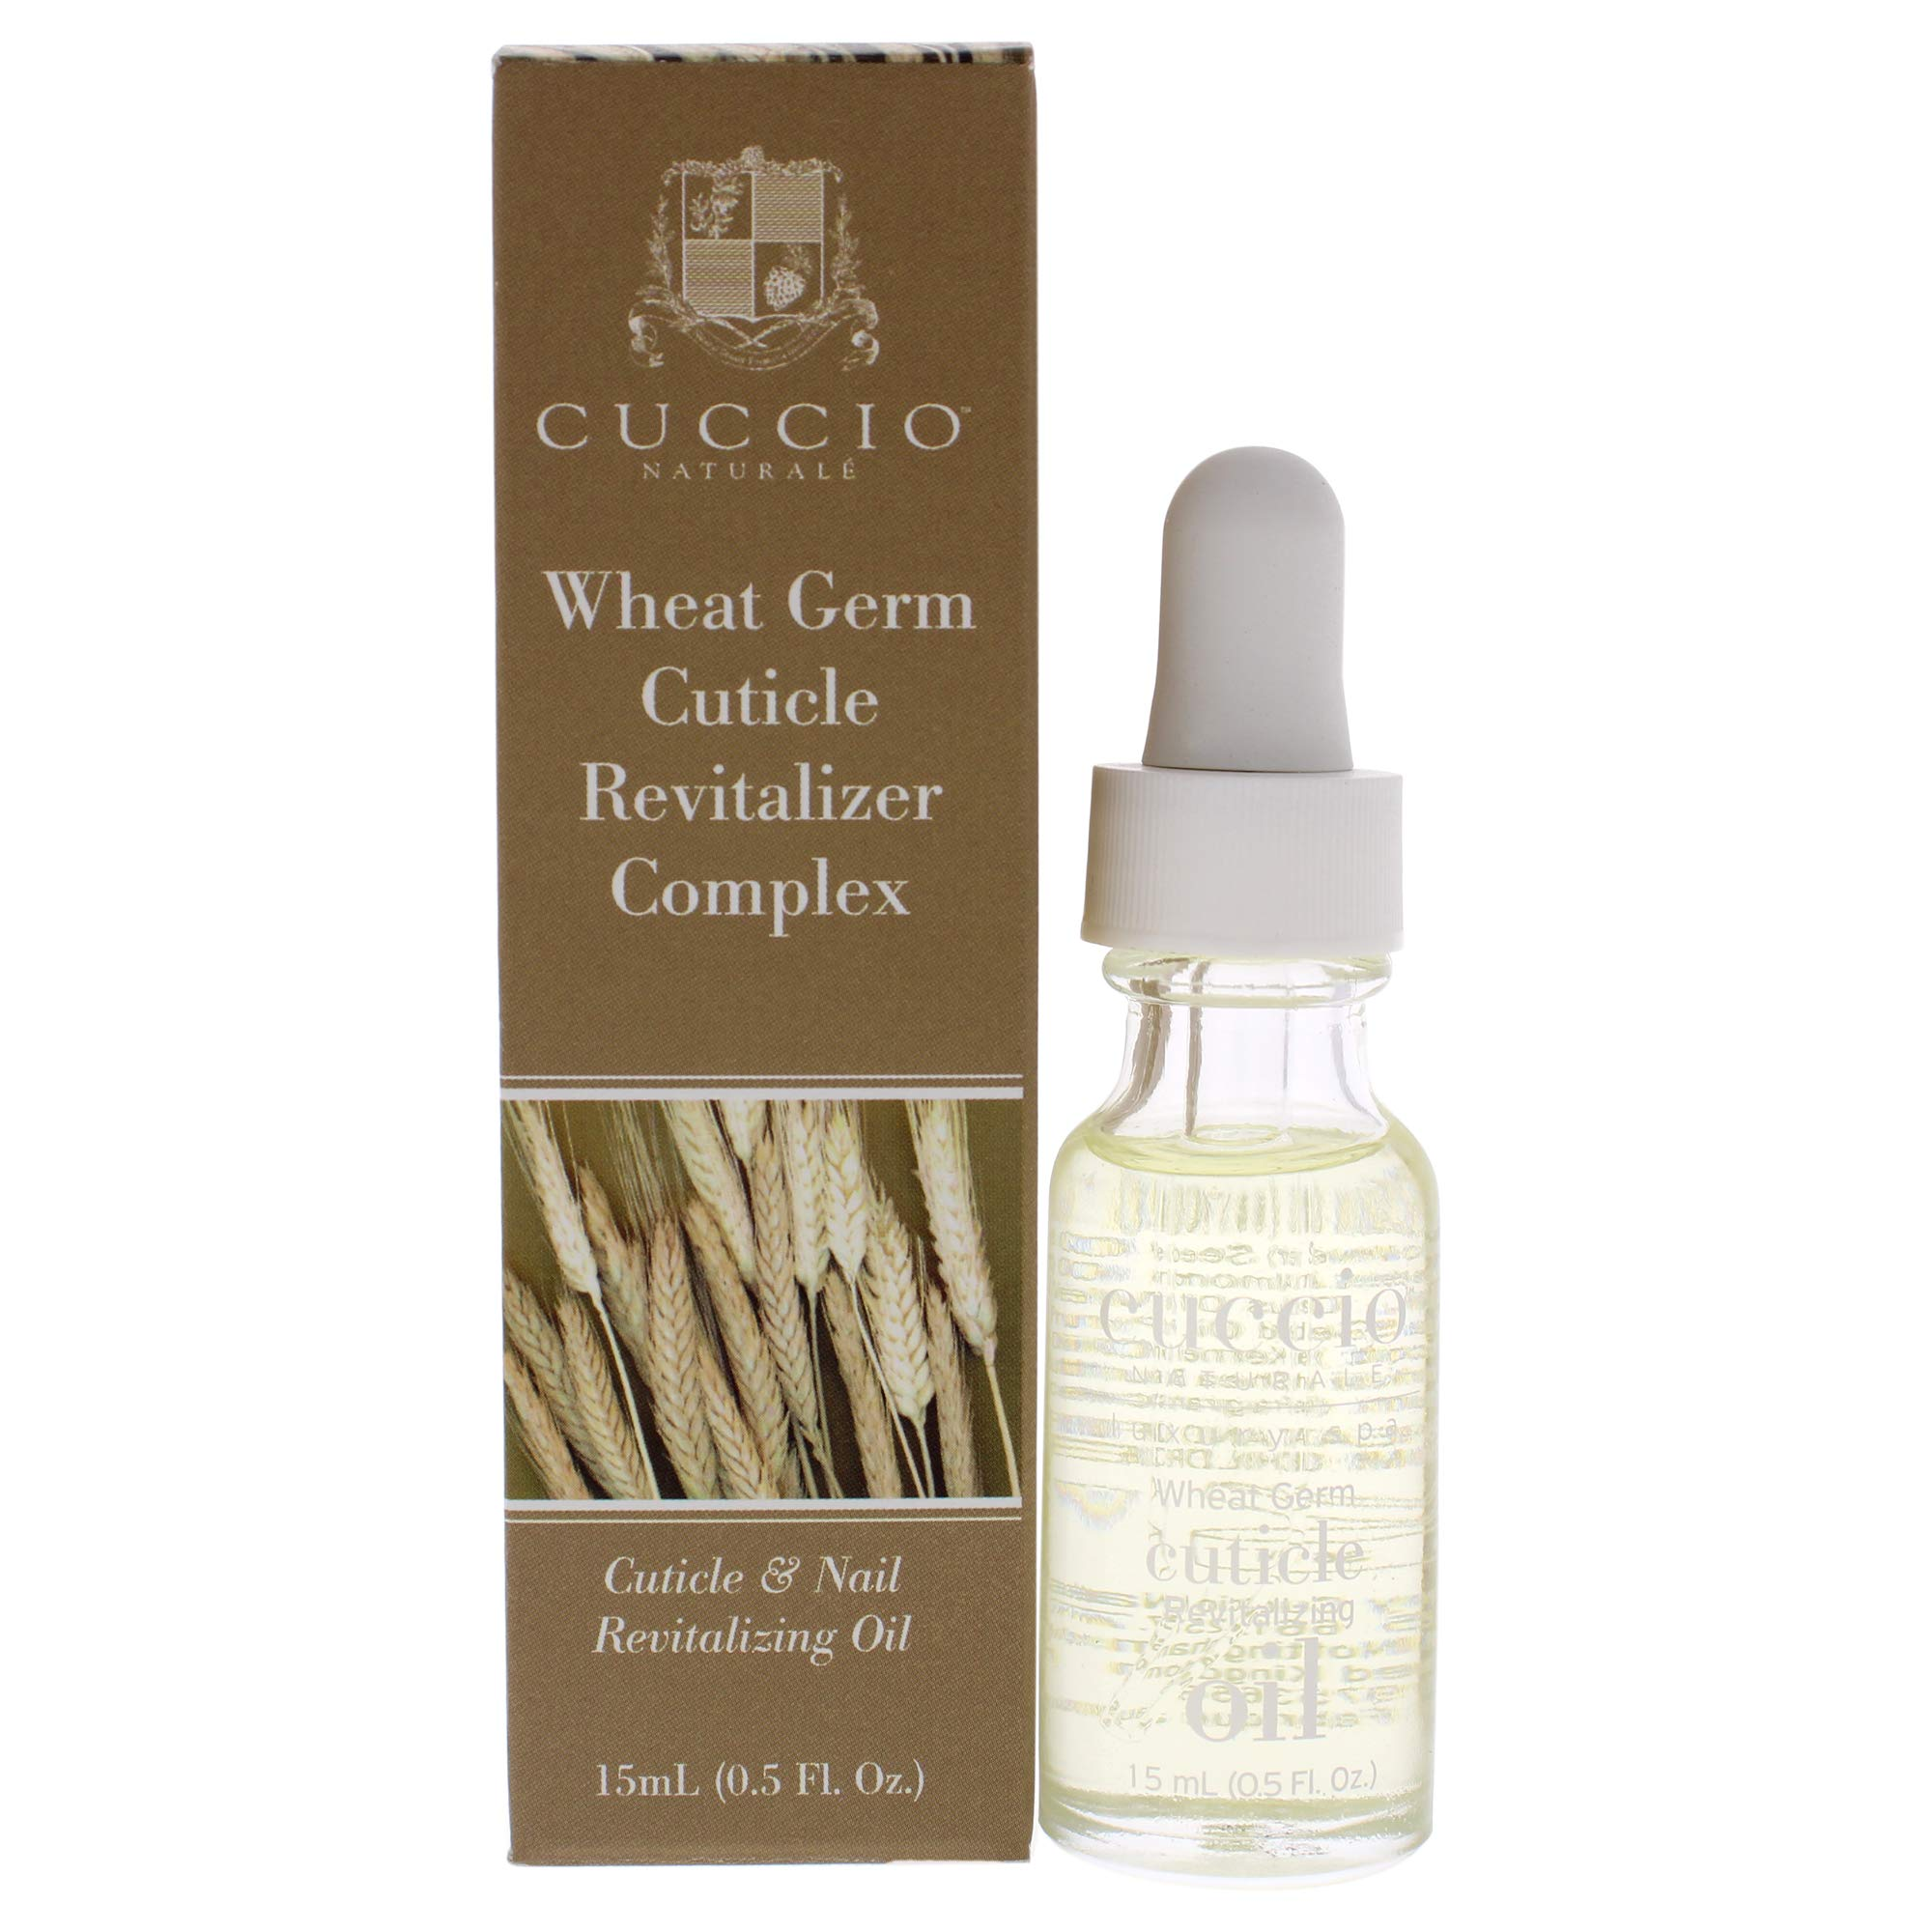 Cuccio Naturale Cuticle Revitalizer Complex - Wheat Germ, .5 oz